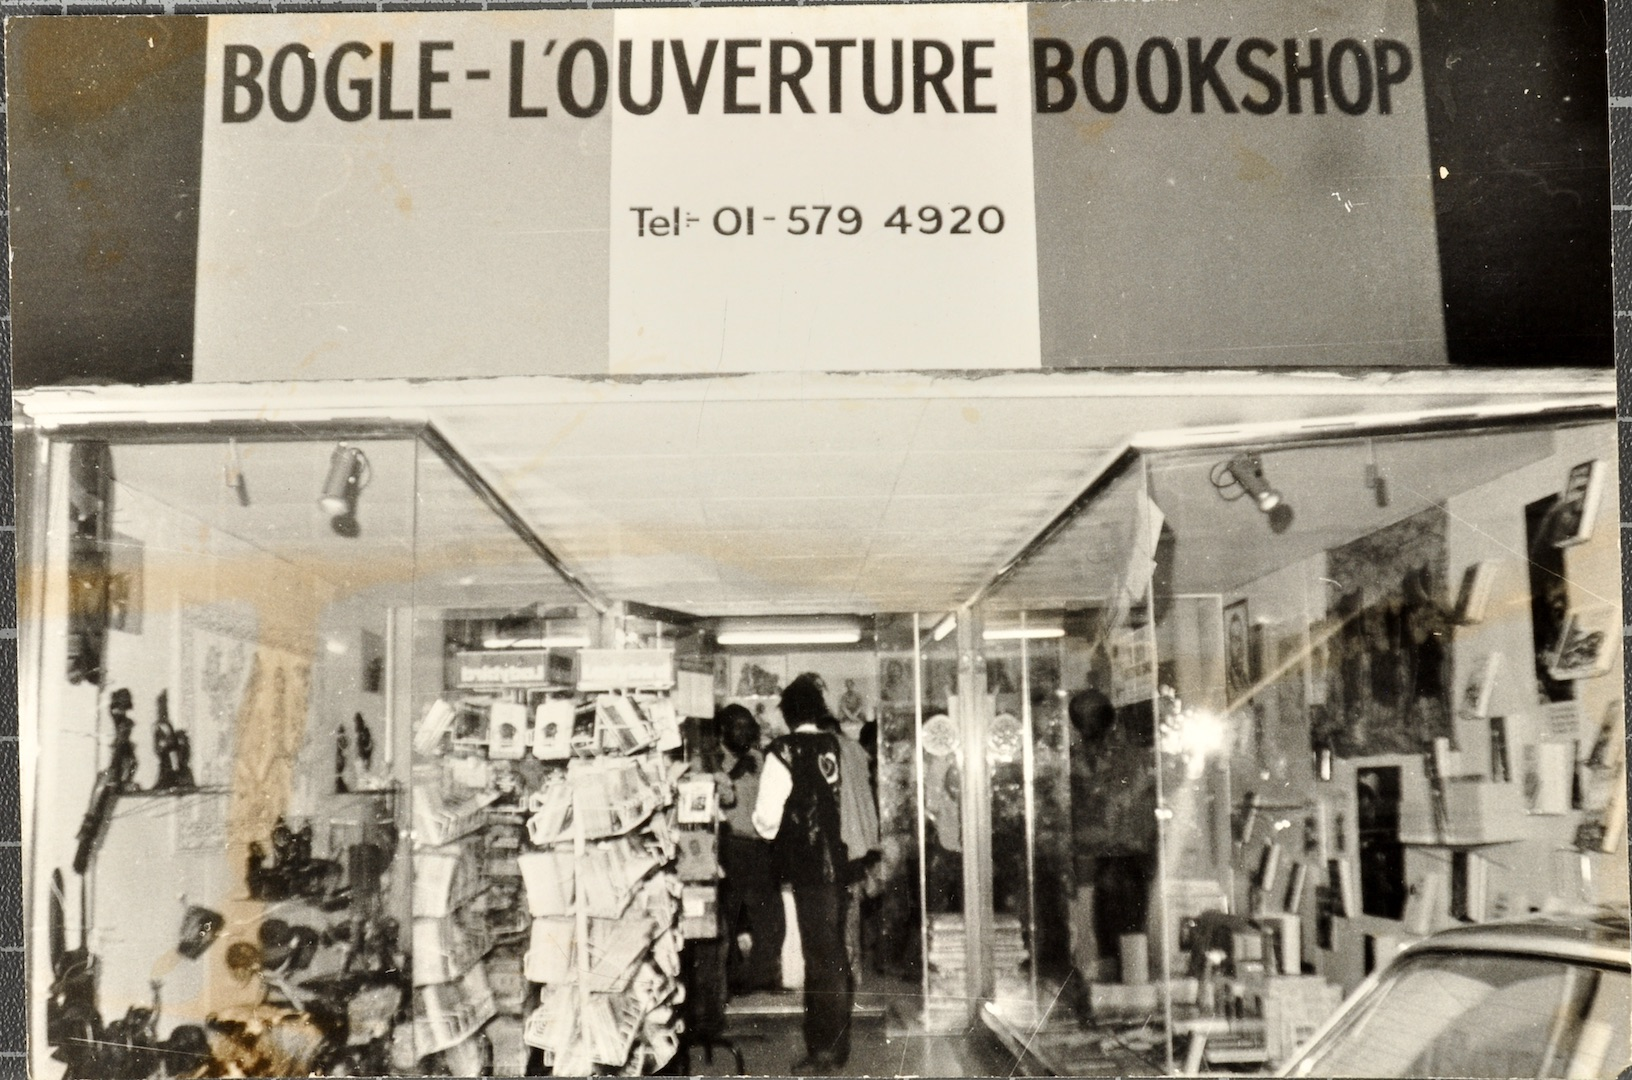 02 Bogle-L'Ouverture Bookshop. c1970s. Huntley Archives at London Metropolitan Archives